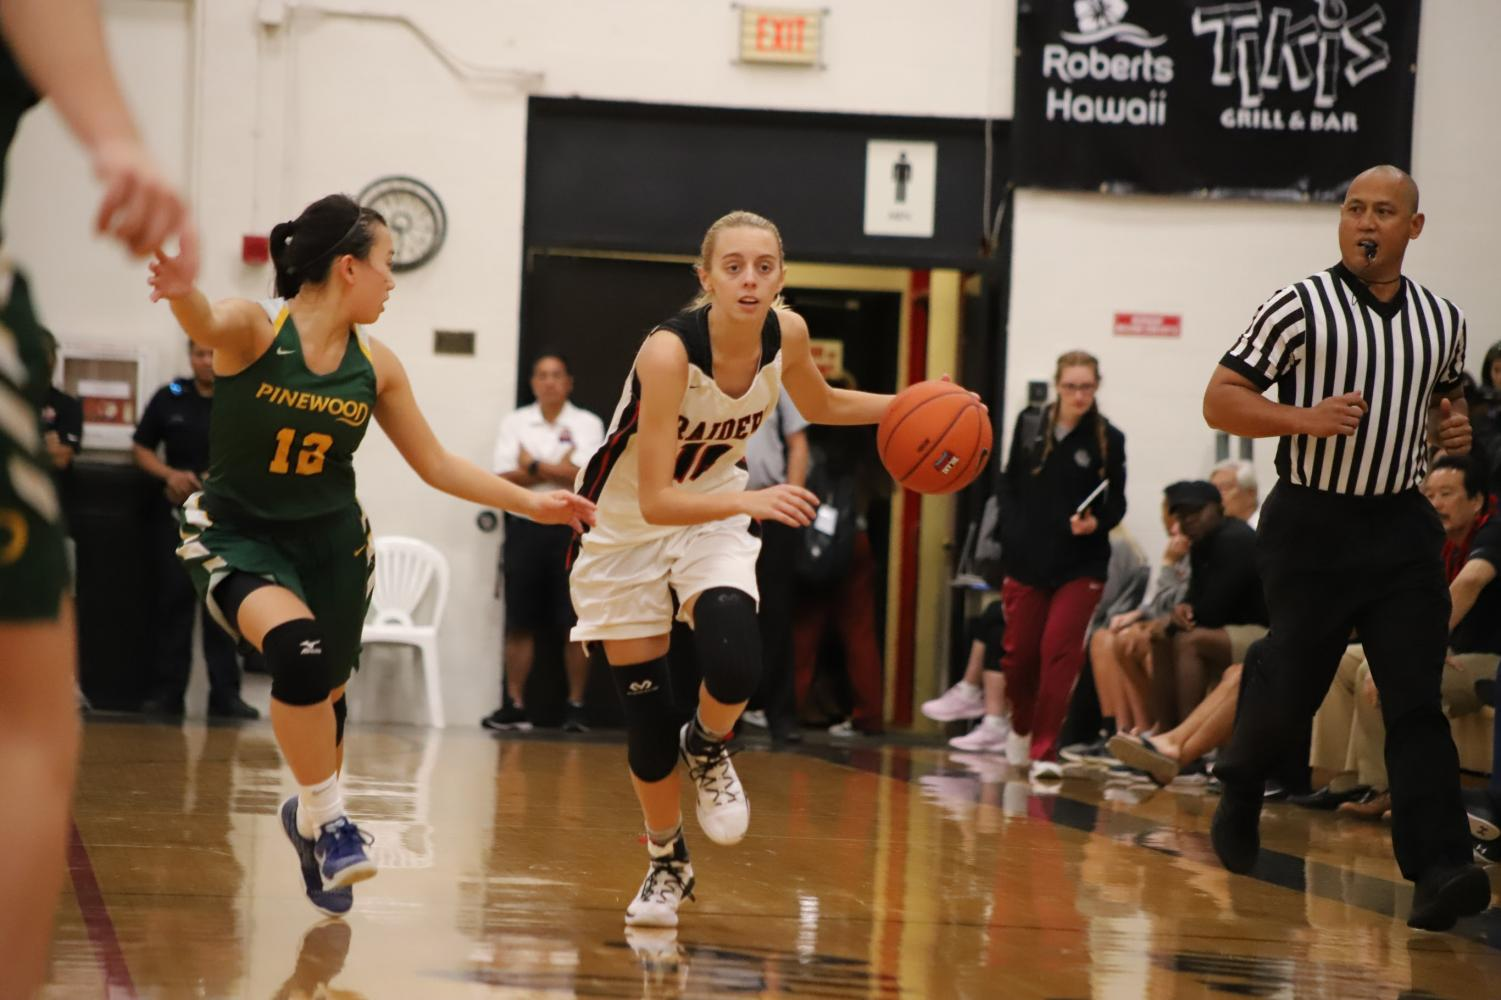 Alexis Huntimer drives down the court in last year's Iolani Classic